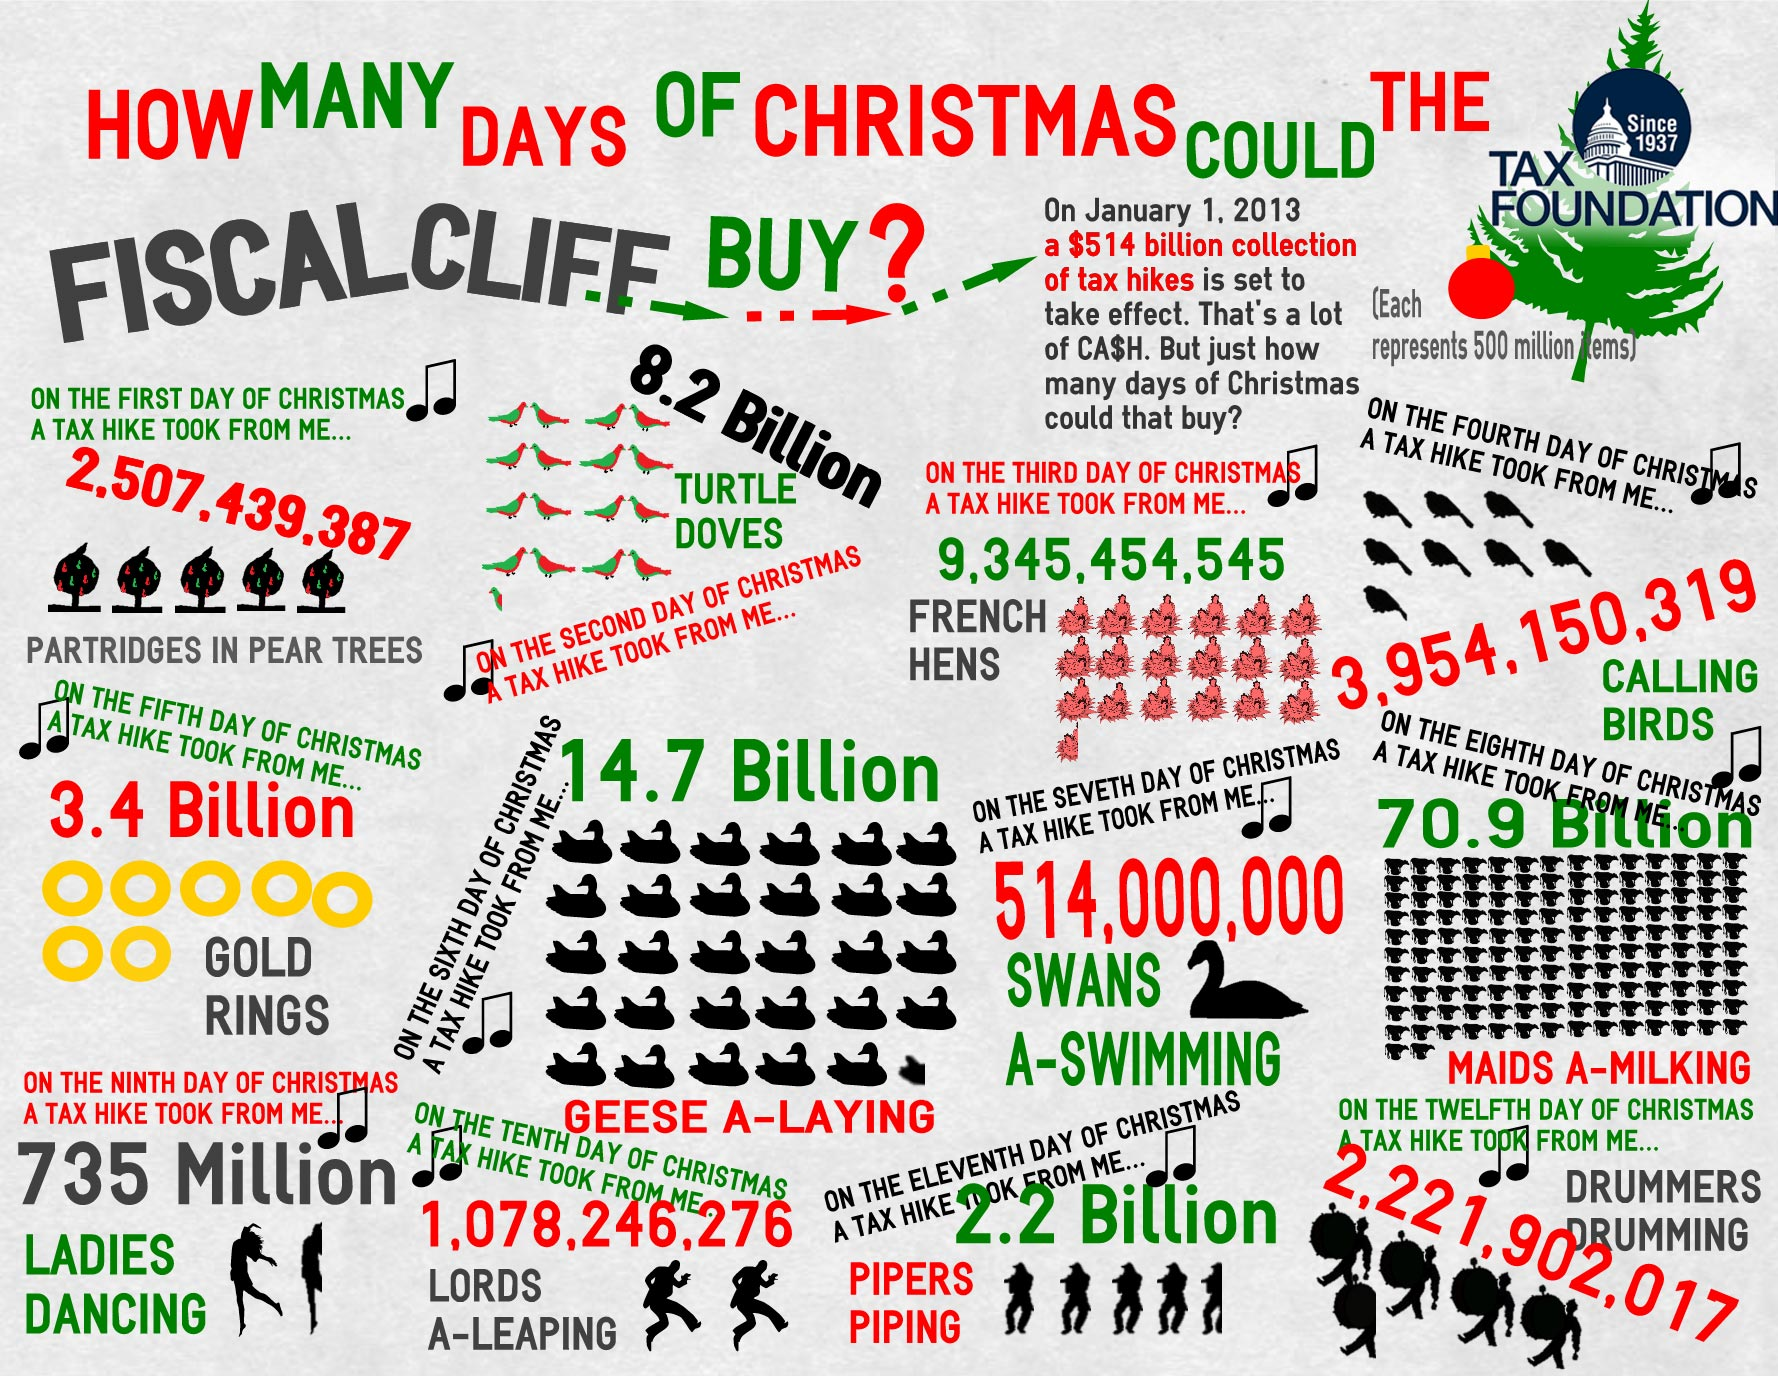 how many days of christmas could the fiscal cliff buy - How Many Days Of Christmas